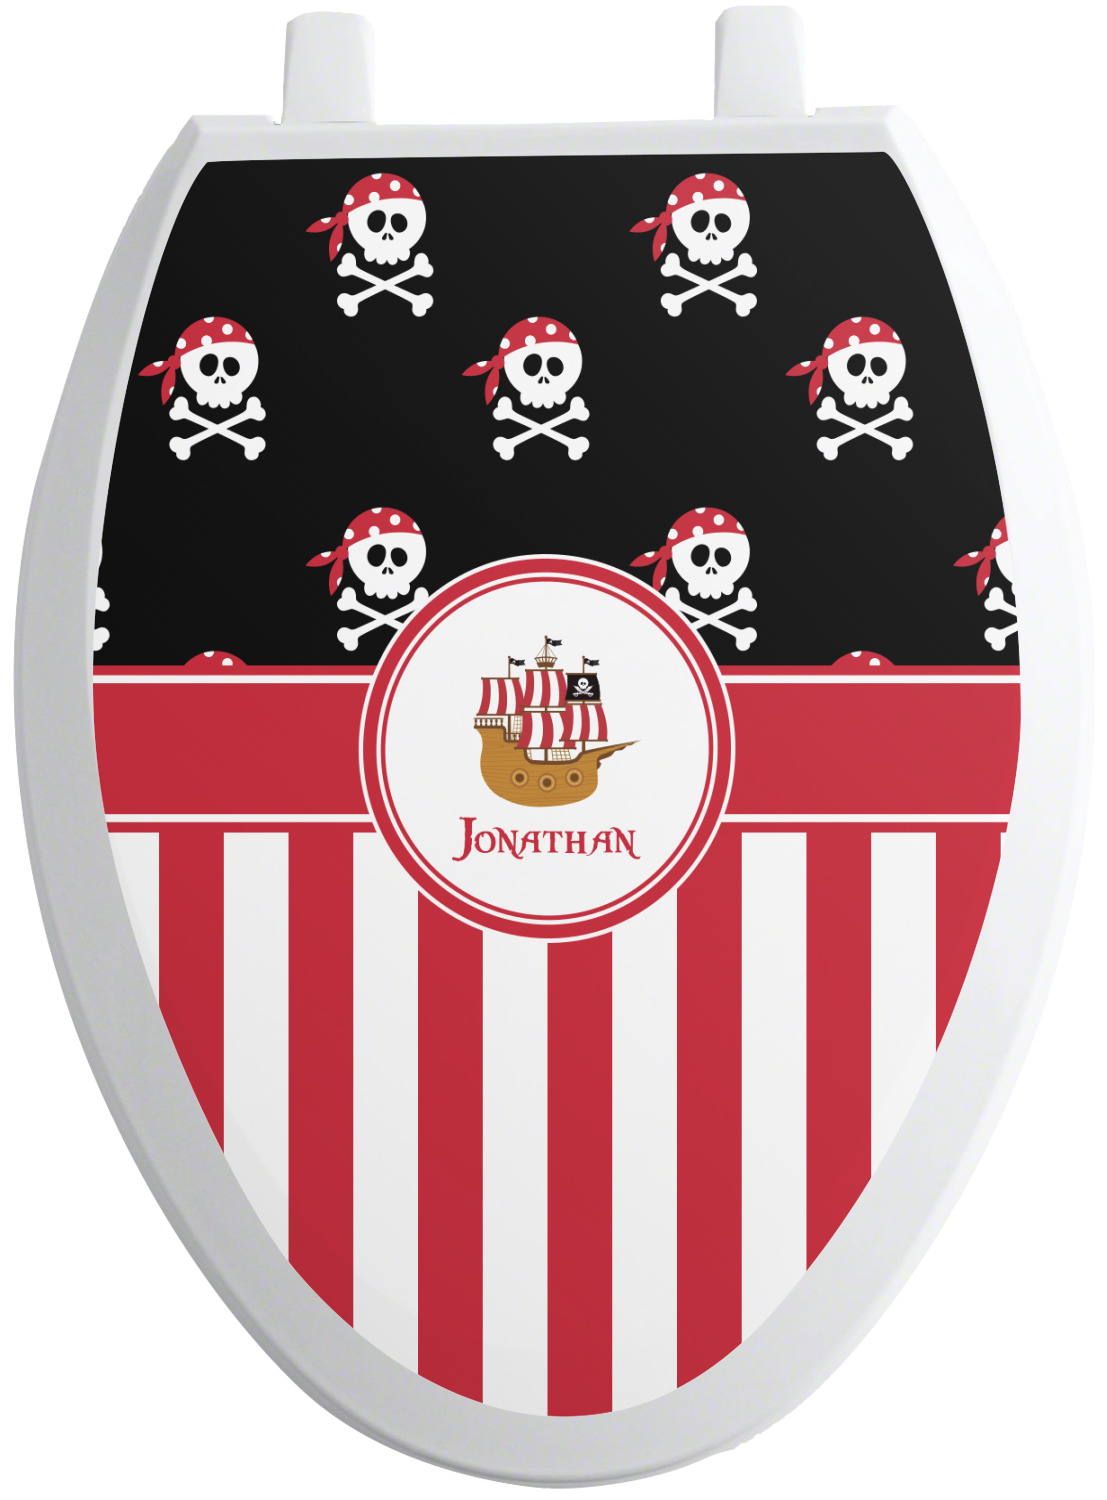 pirate stripes toilet seat decal elongated. Black Bedroom Furniture Sets. Home Design Ideas